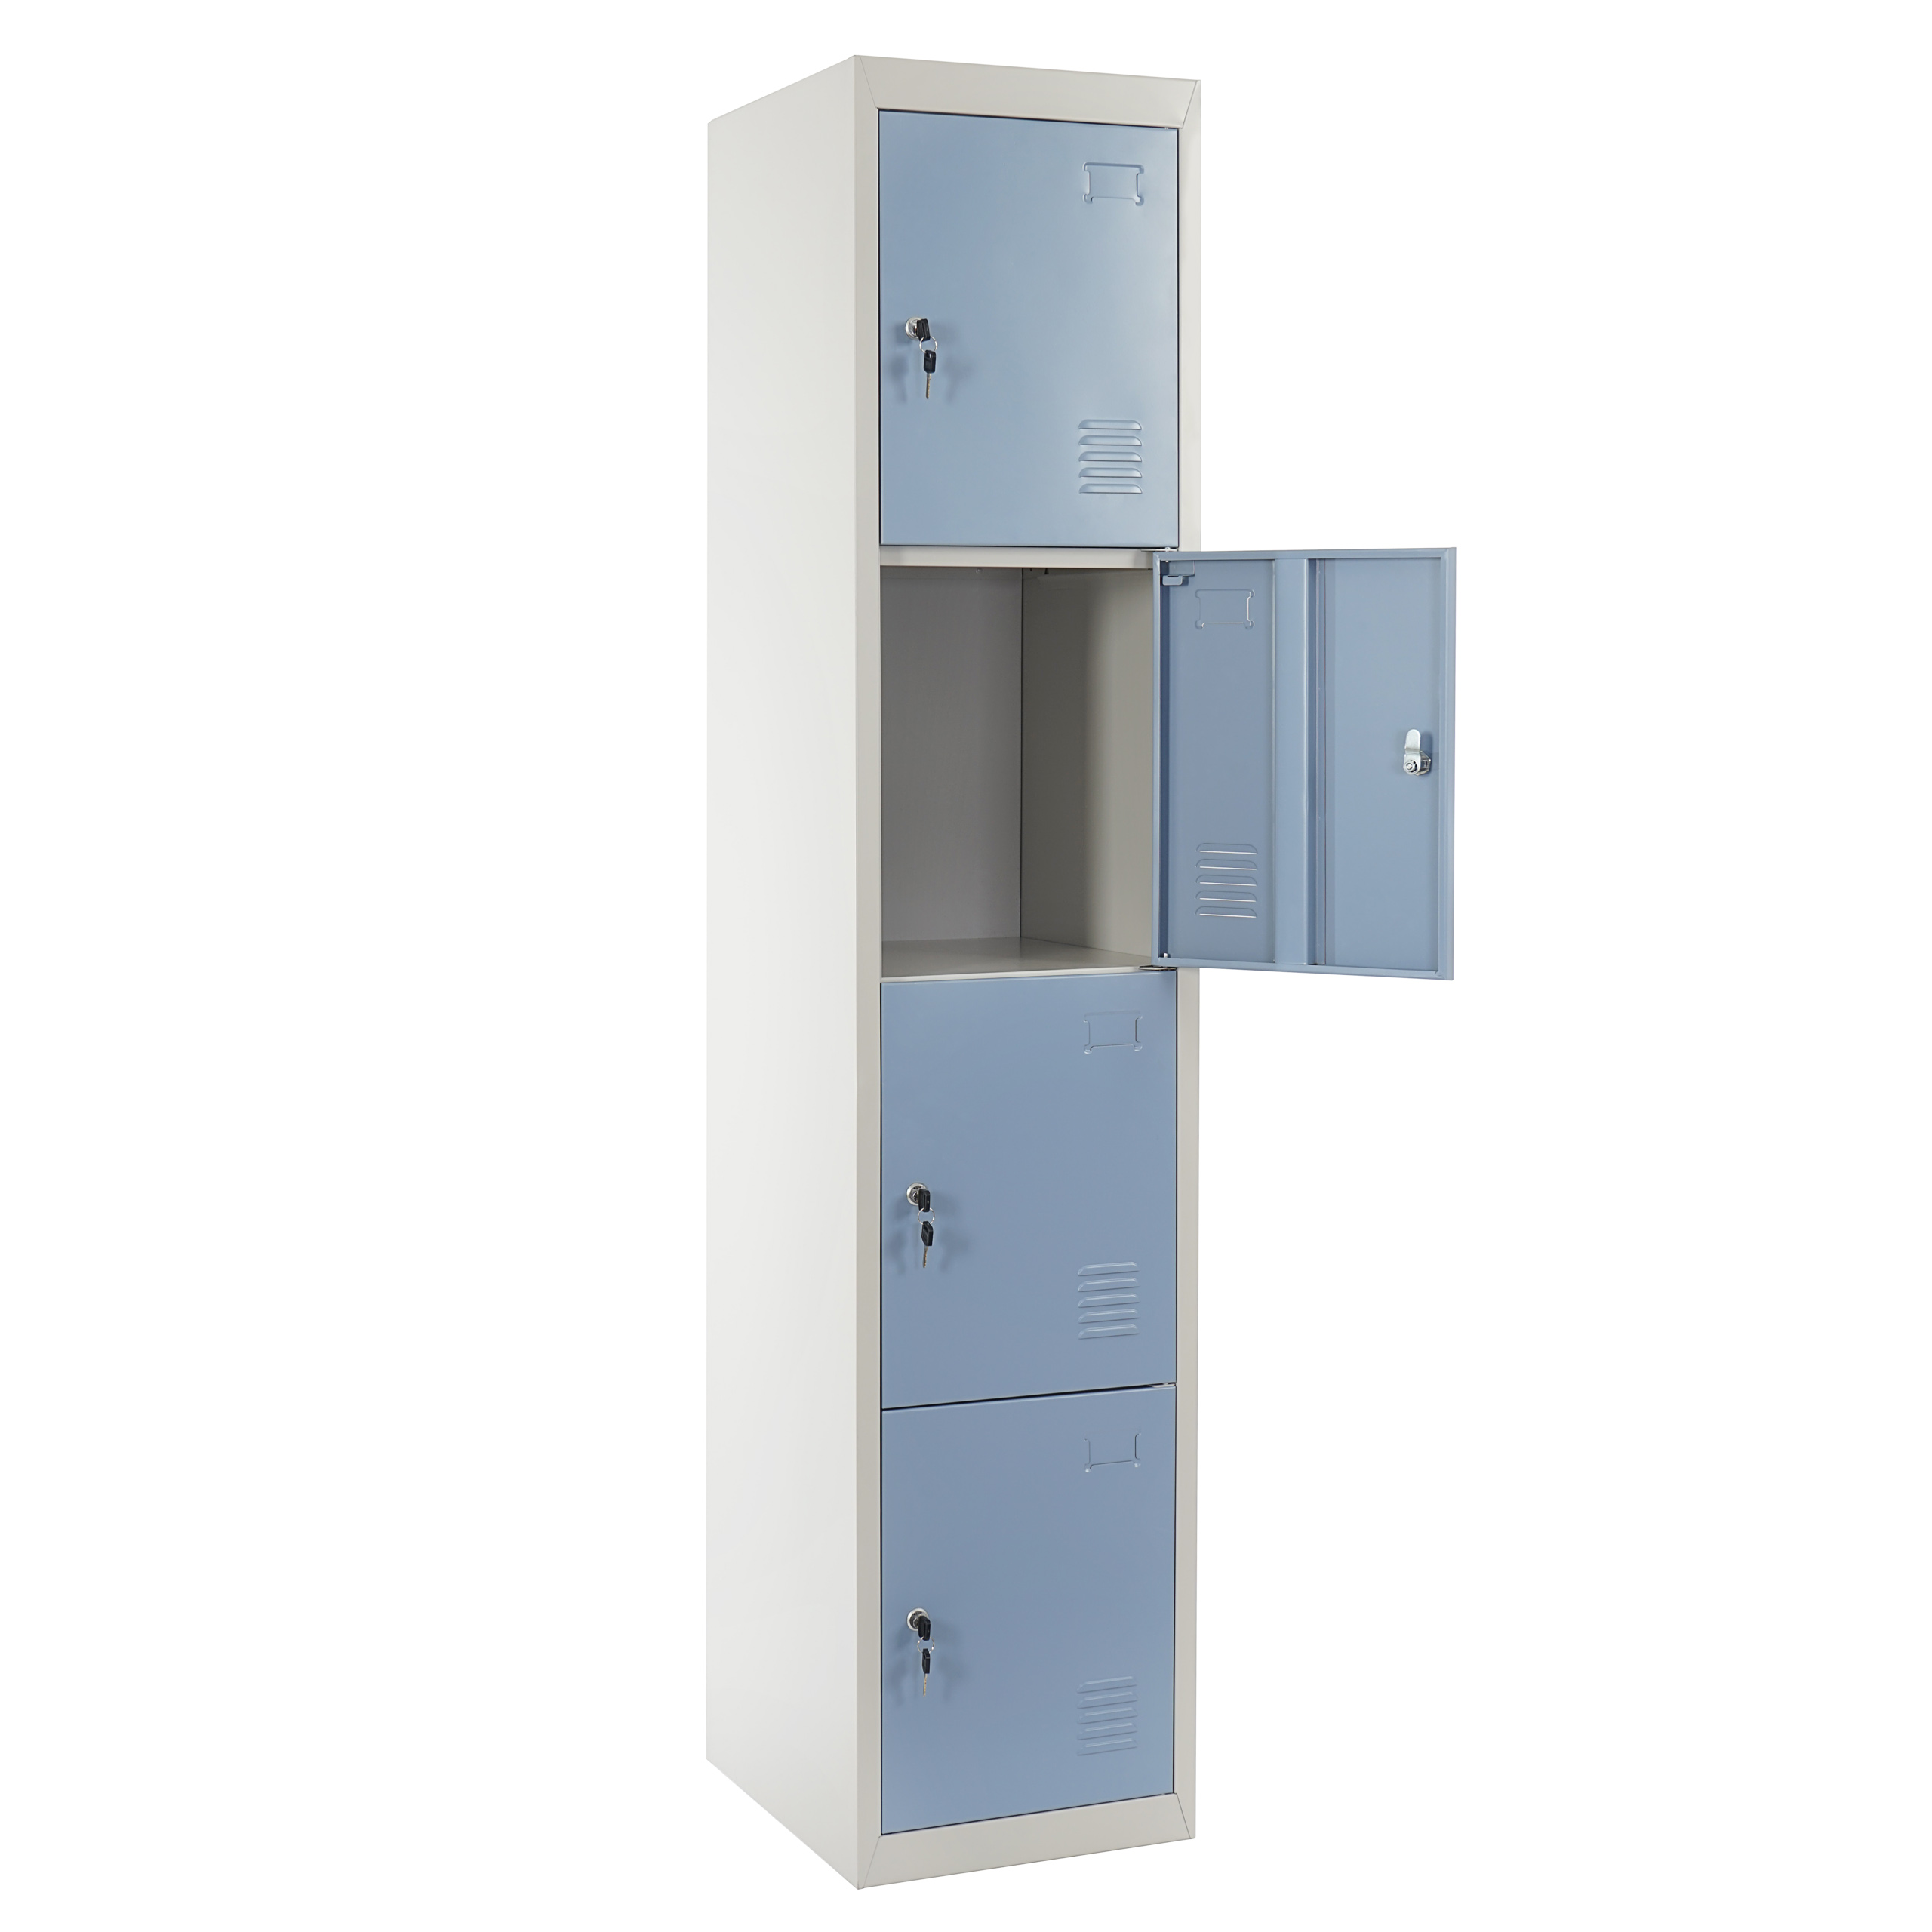 schlie fach boston t163 schlie fachschrank wertfachschrank spind metall 180x38x45cm blau. Black Bedroom Furniture Sets. Home Design Ideas